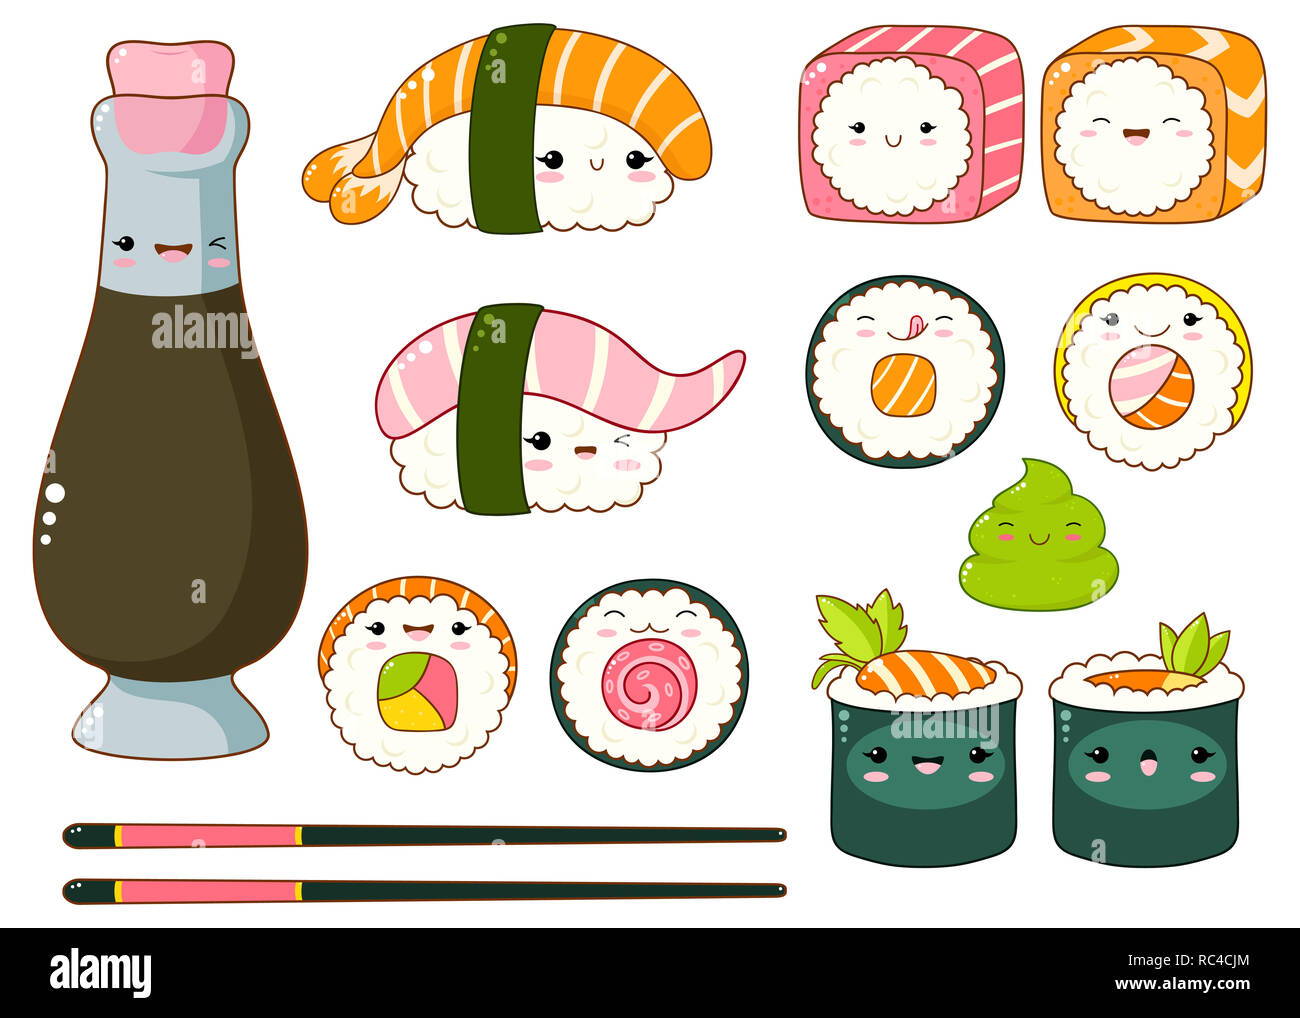 Set of cute sushi and rolls icons in kawaii style with smiling face and pink cheeks. Japanese traditional cuisine dishes. Bottle with soy souse, chops - Stock Image